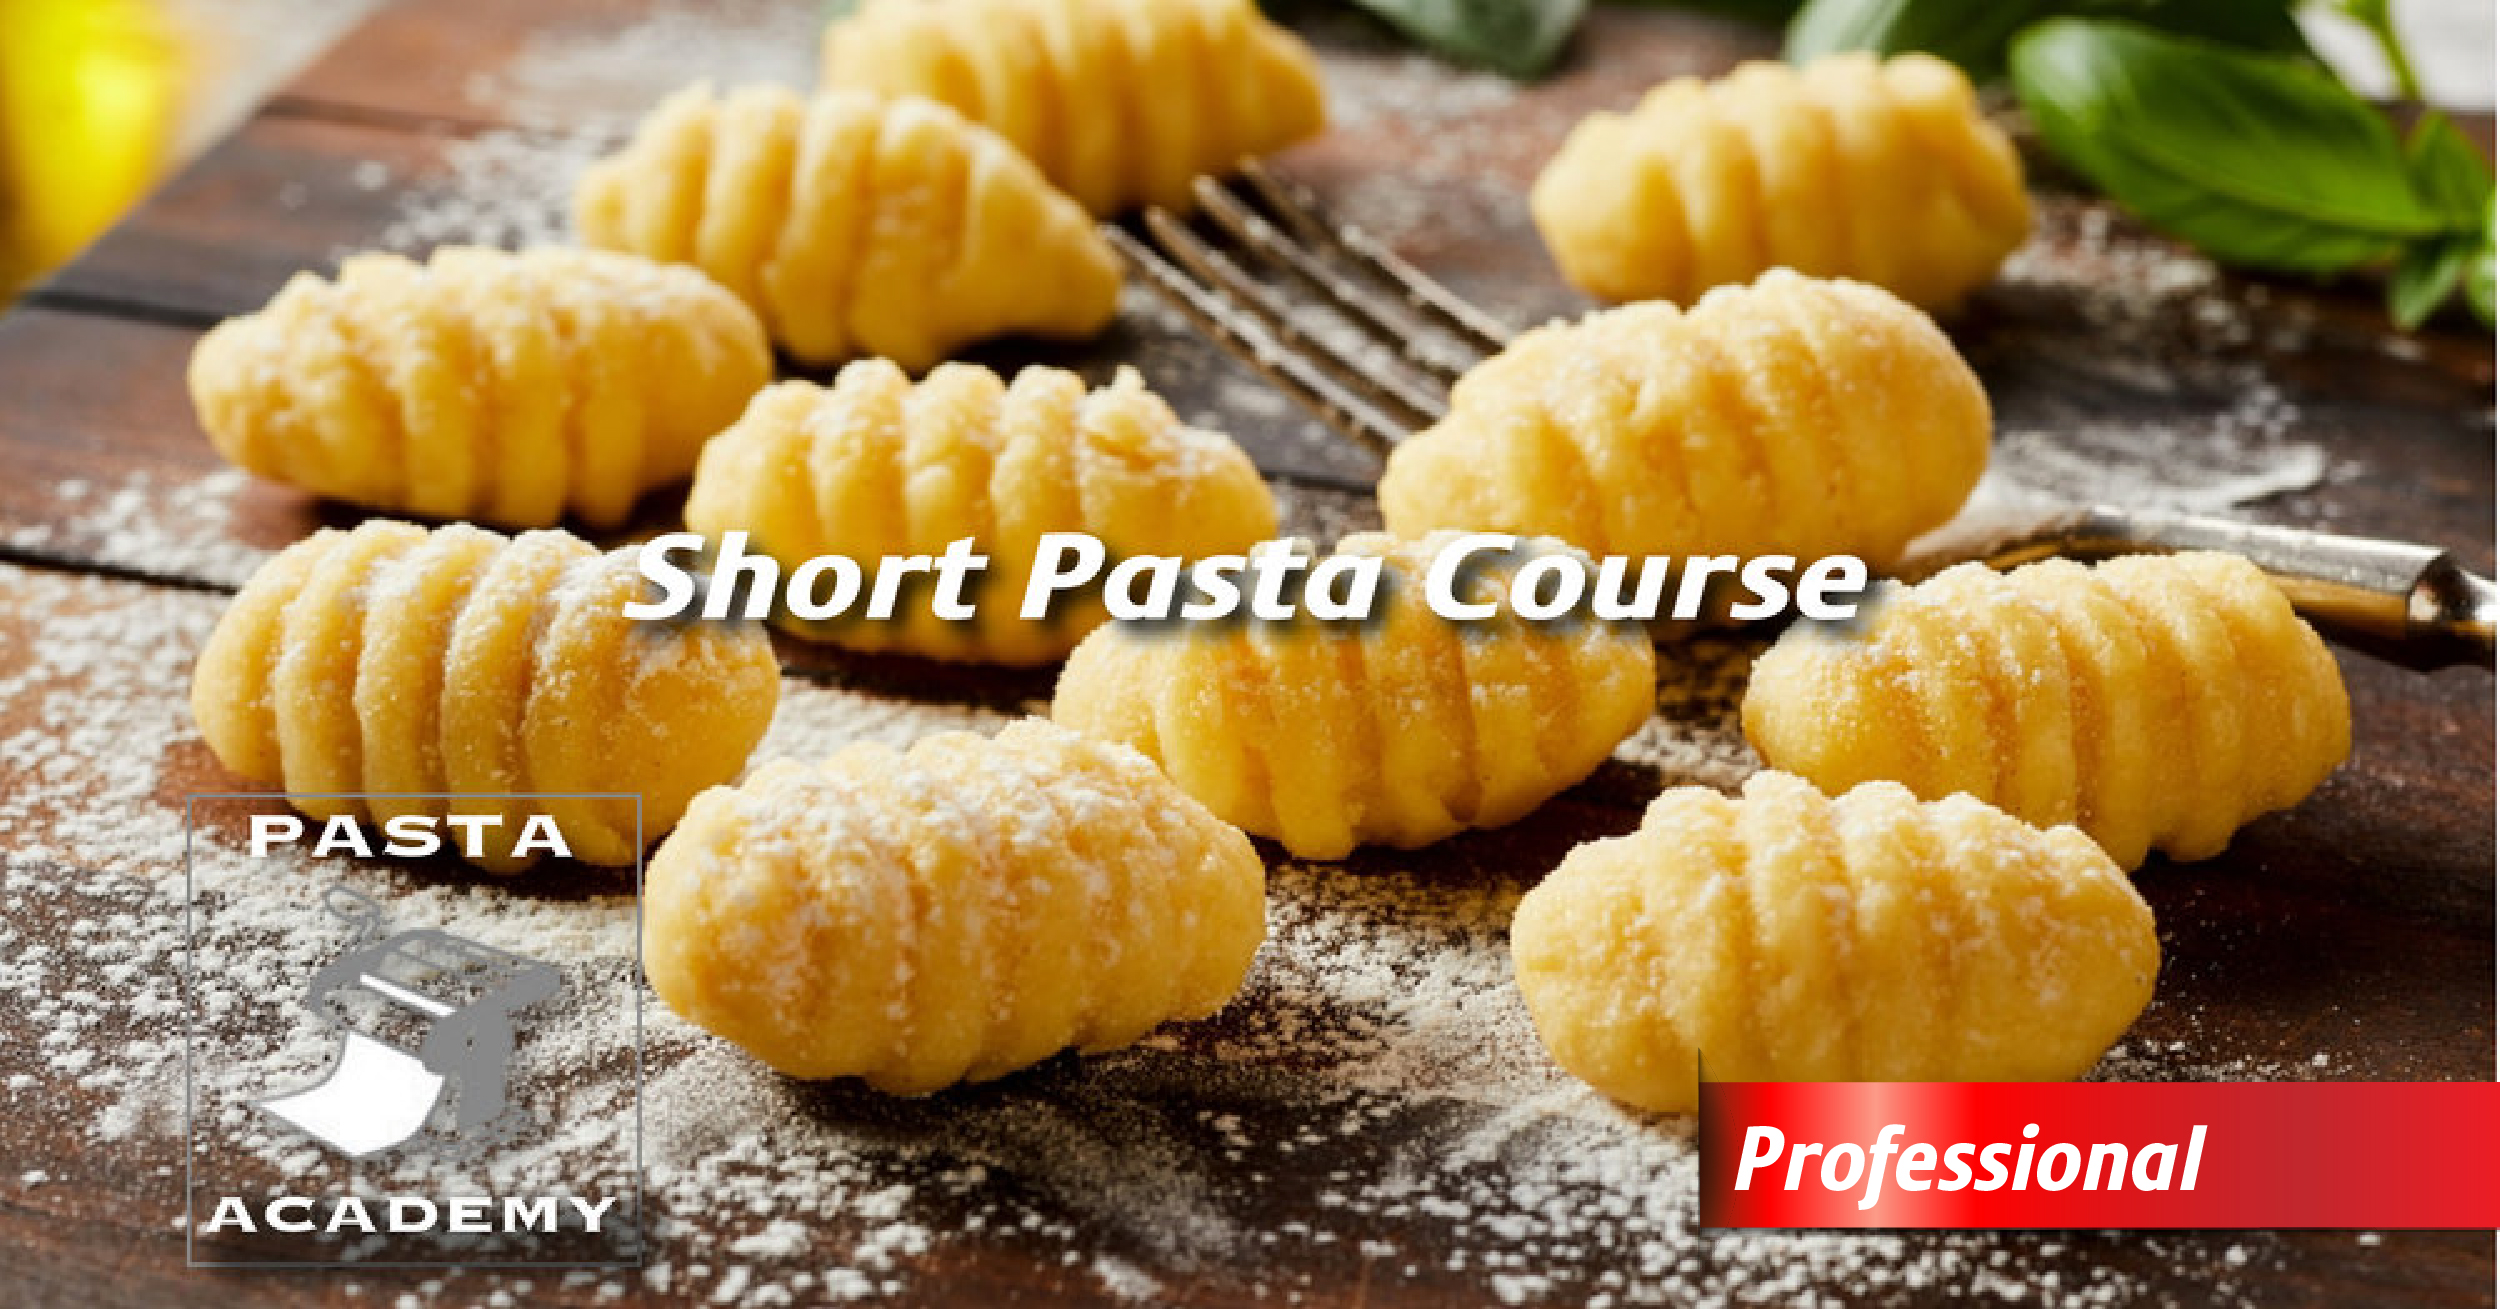 Professional - Short Pasta Course  Learn the specifics of numerous types of pasta in the category, including penne, rigatoni, trofie, cavatelli, macaroni and other similar types. Students will explore the different types of sauces, additions and garnishes that the pastas are commonly paired with.  Course Length: 5 hours – CERTIFICATE PROGRAM